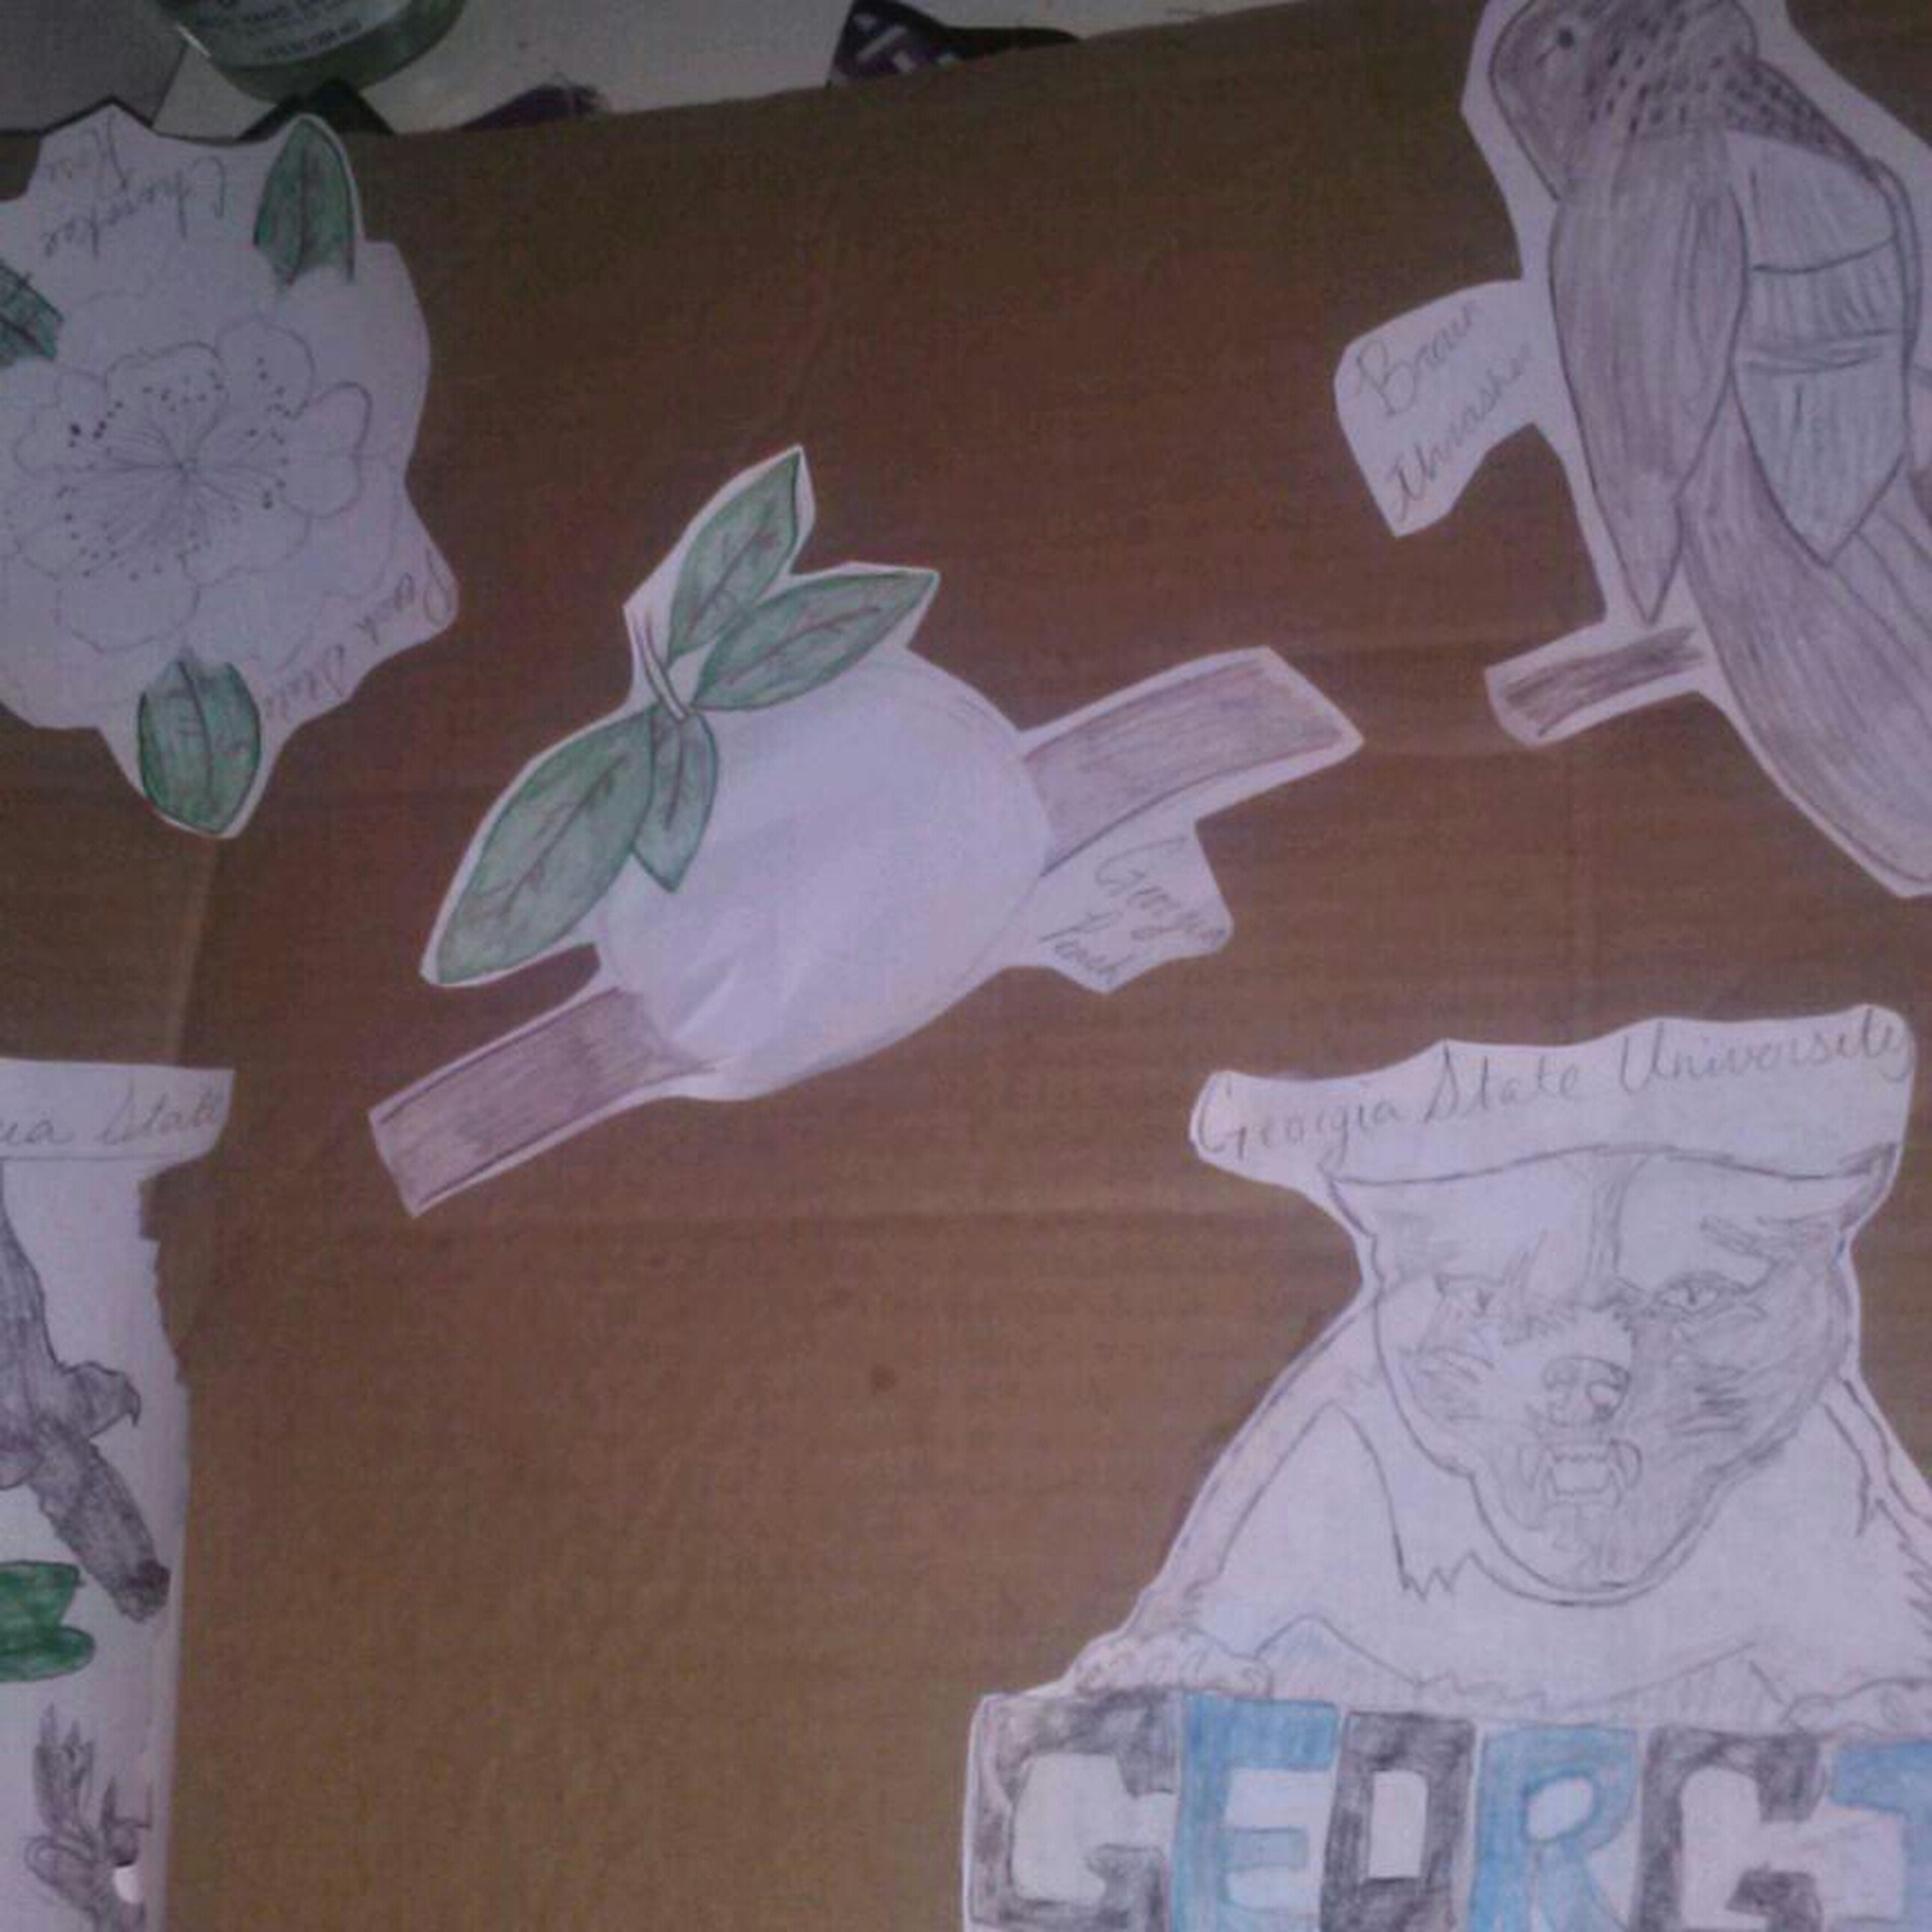 I Drew My Sista Pictures 4 Her Project .yea I Can Braw